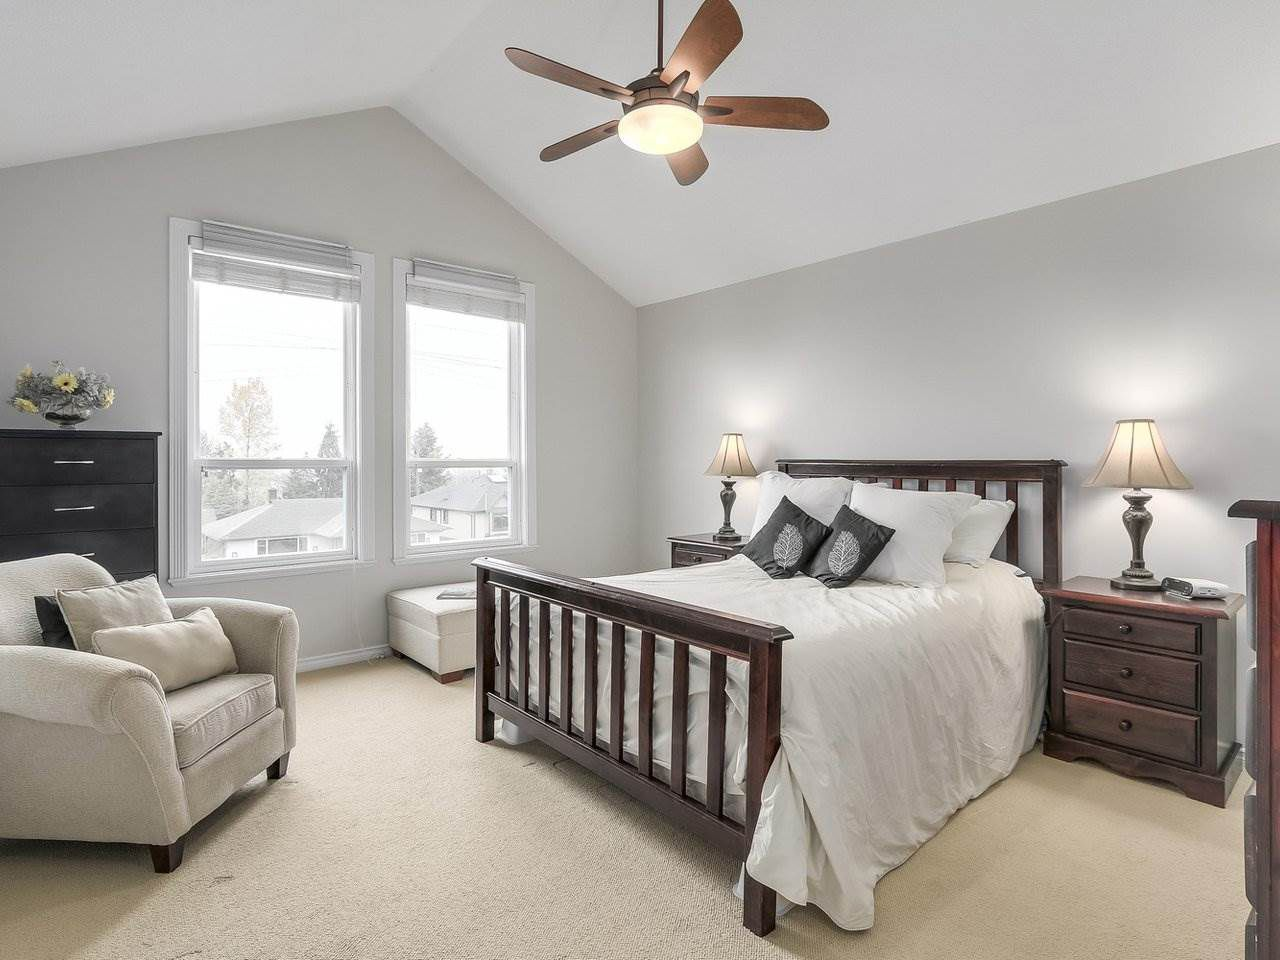 Photo 11: Photos: 658 E 4TH STREET in North Vancouver: Queensbury House for sale : MLS®# R2222993